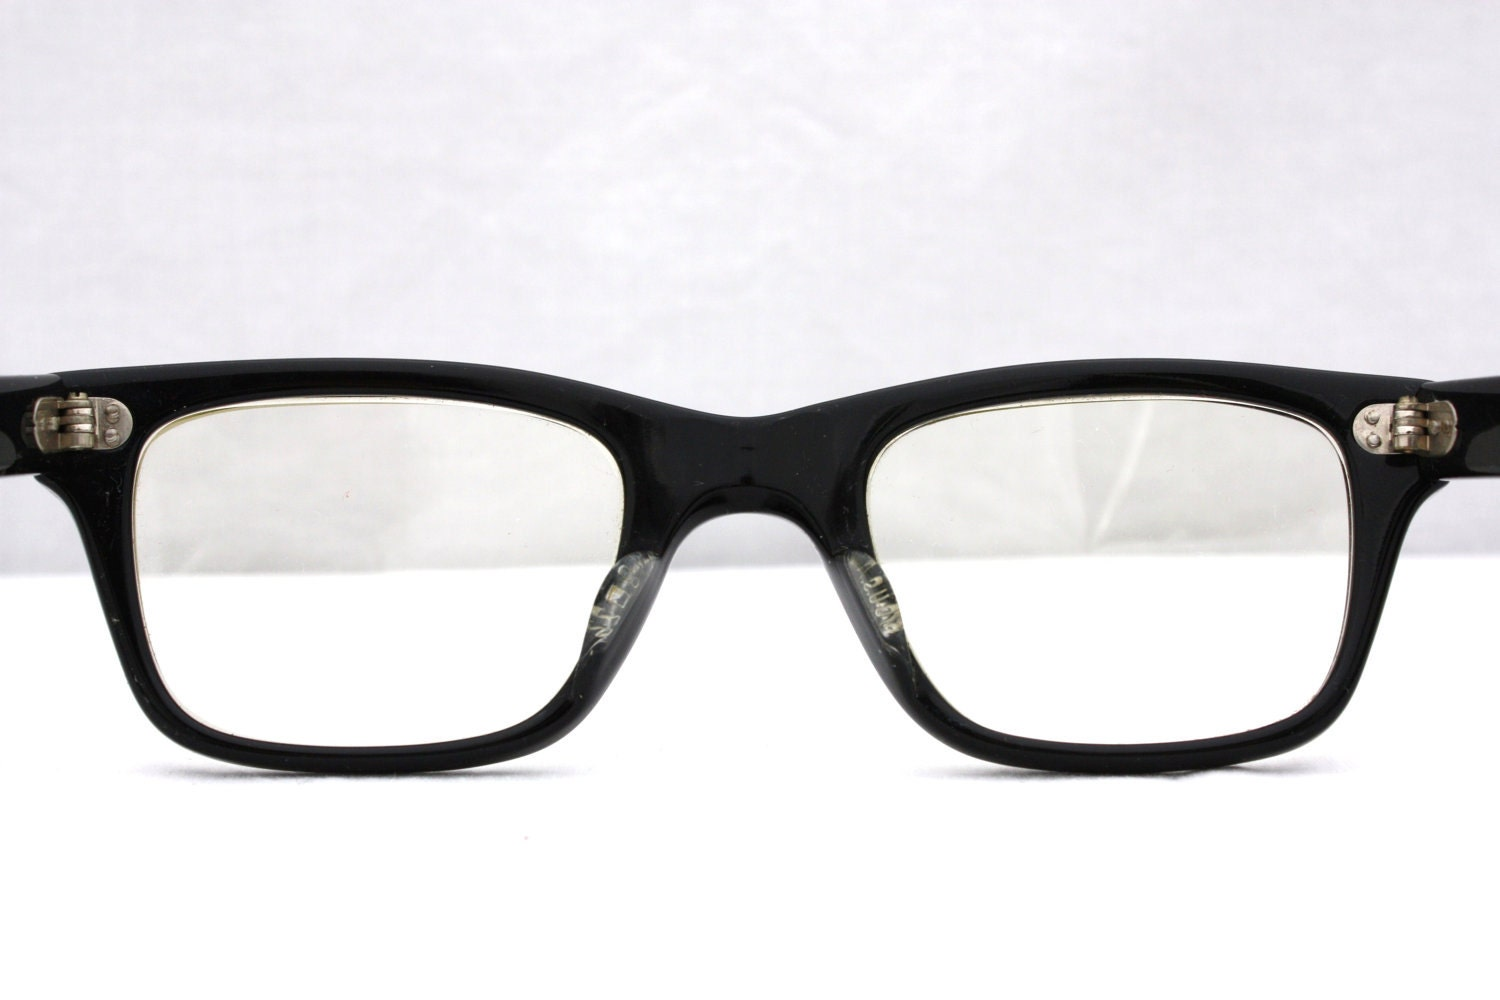 Vintage 1960s Black Horn Rimmed Glasses Mad Men Style by ...